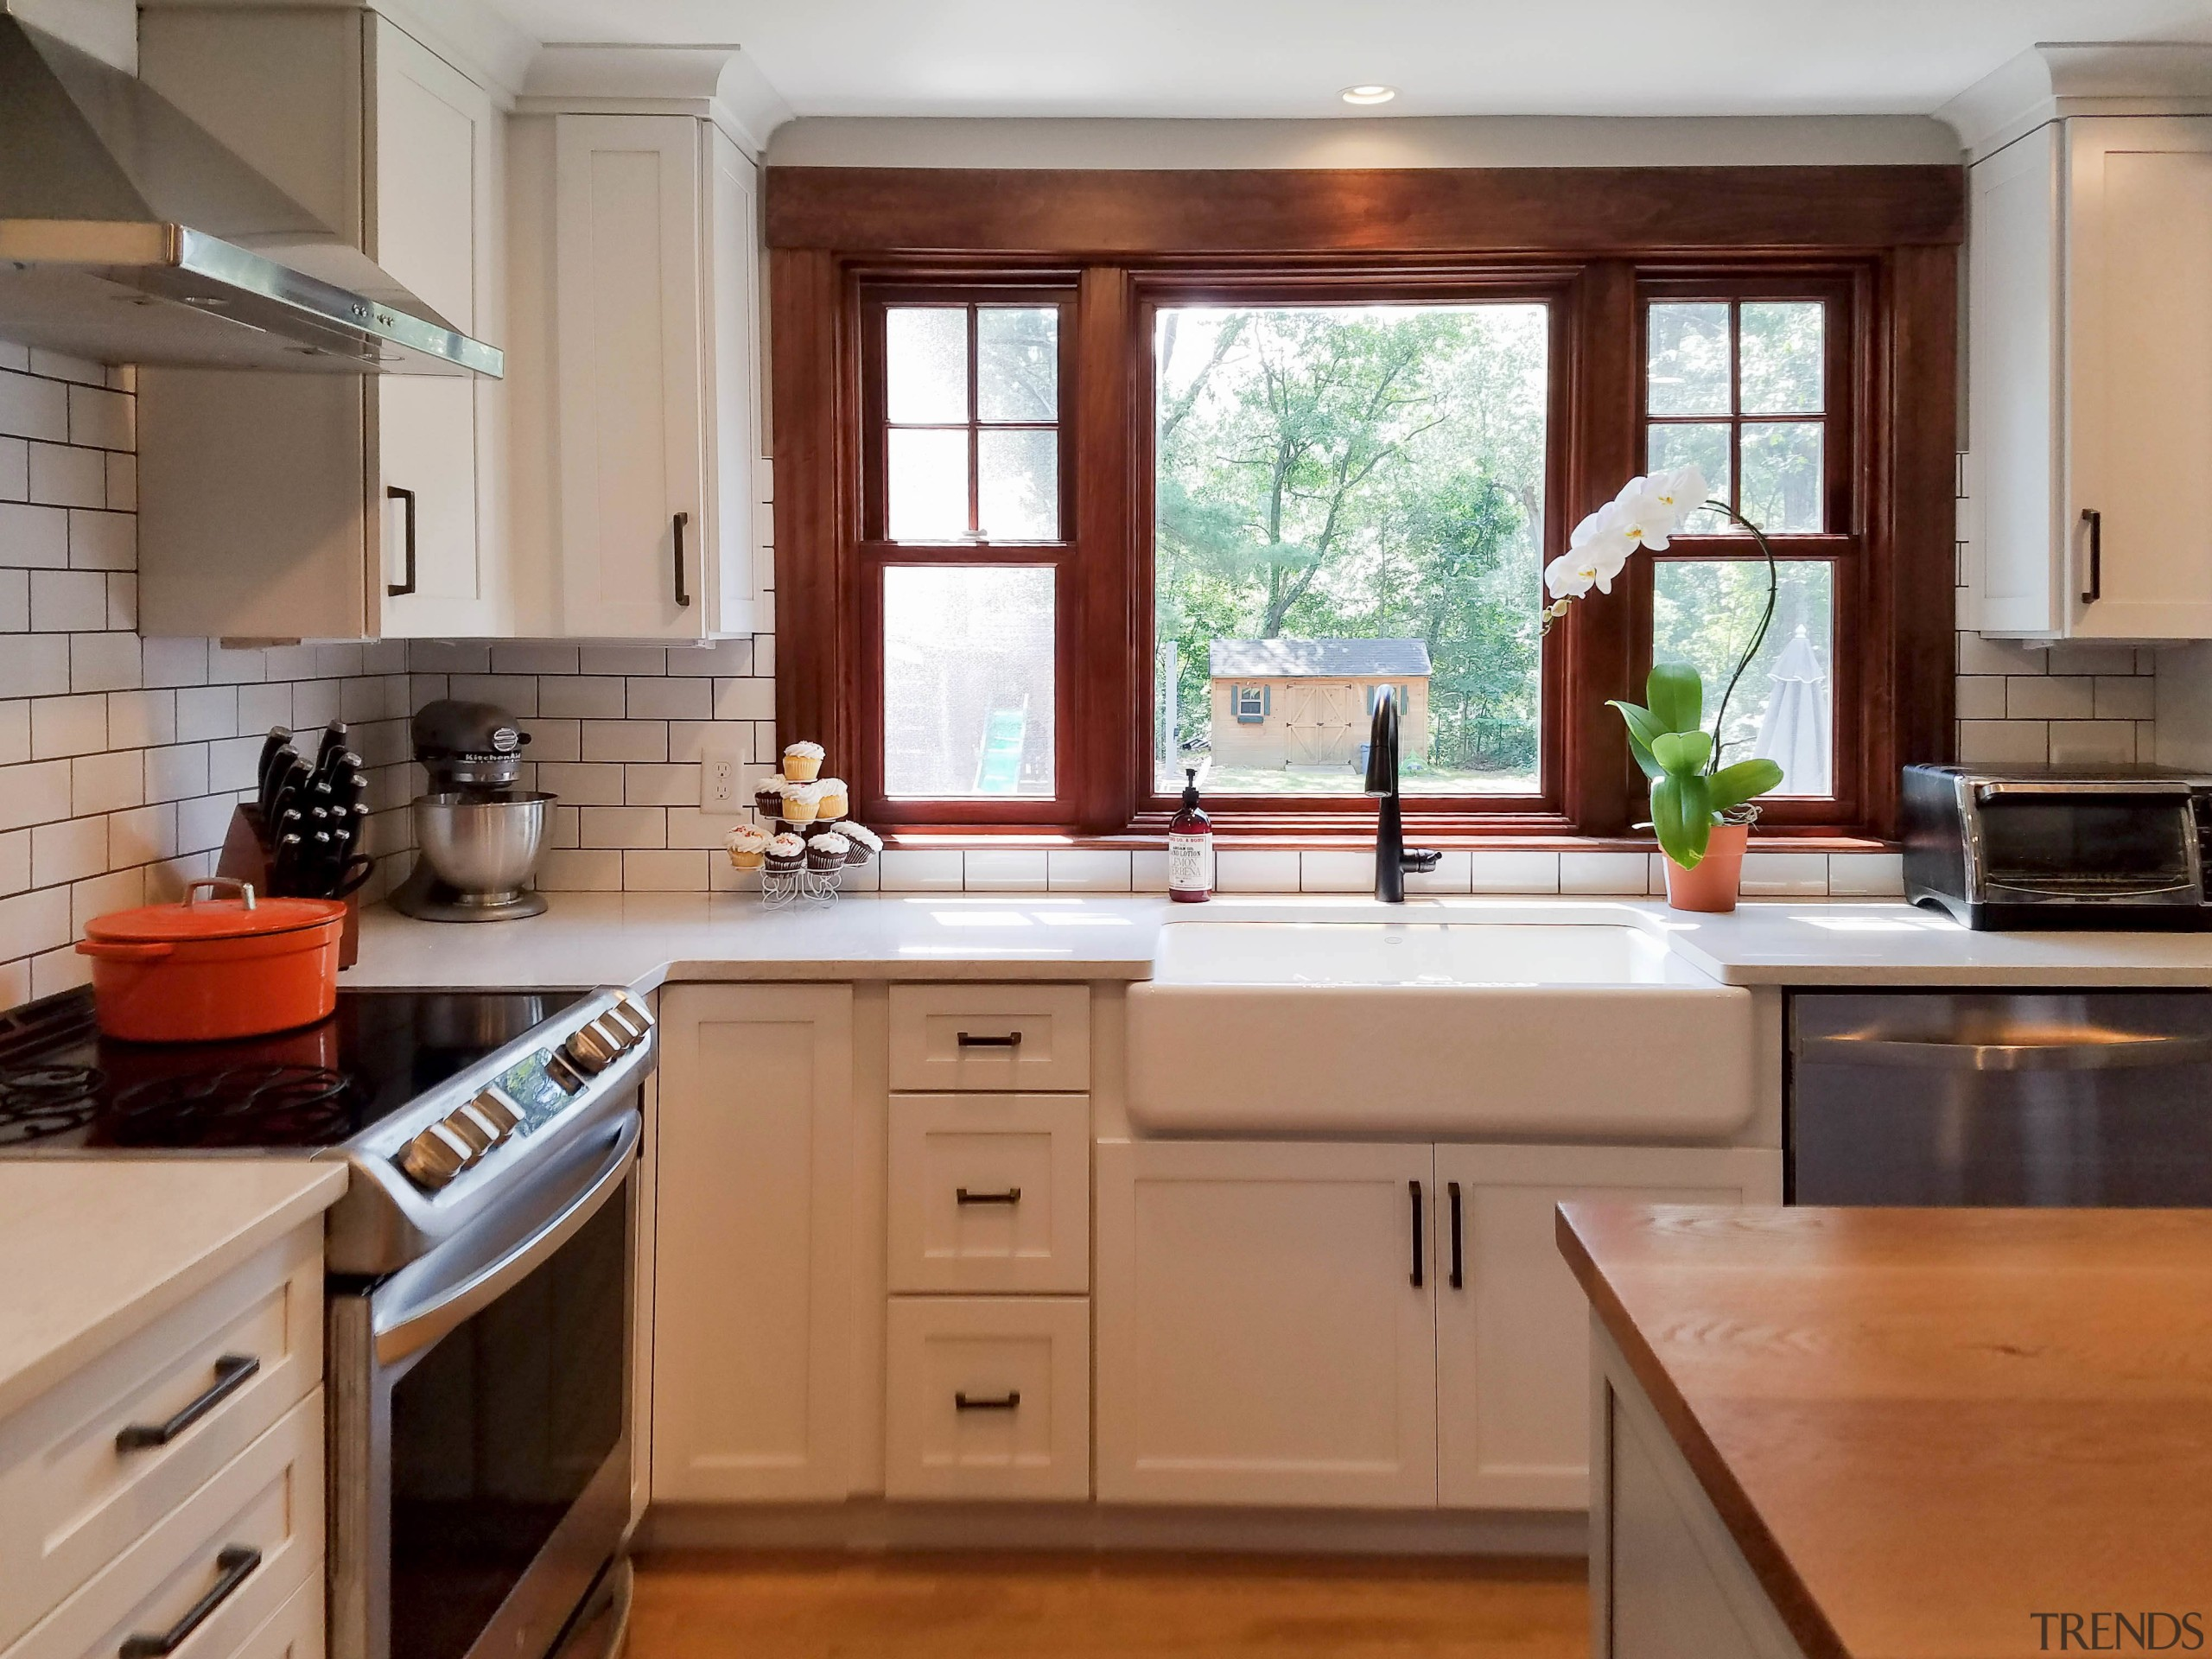 A substantial sink sits below a set of cabinetry, countertop, cuisine classique, floor, flooring, hardwood, home, interior design, kitchen, real estate, room, window, brown